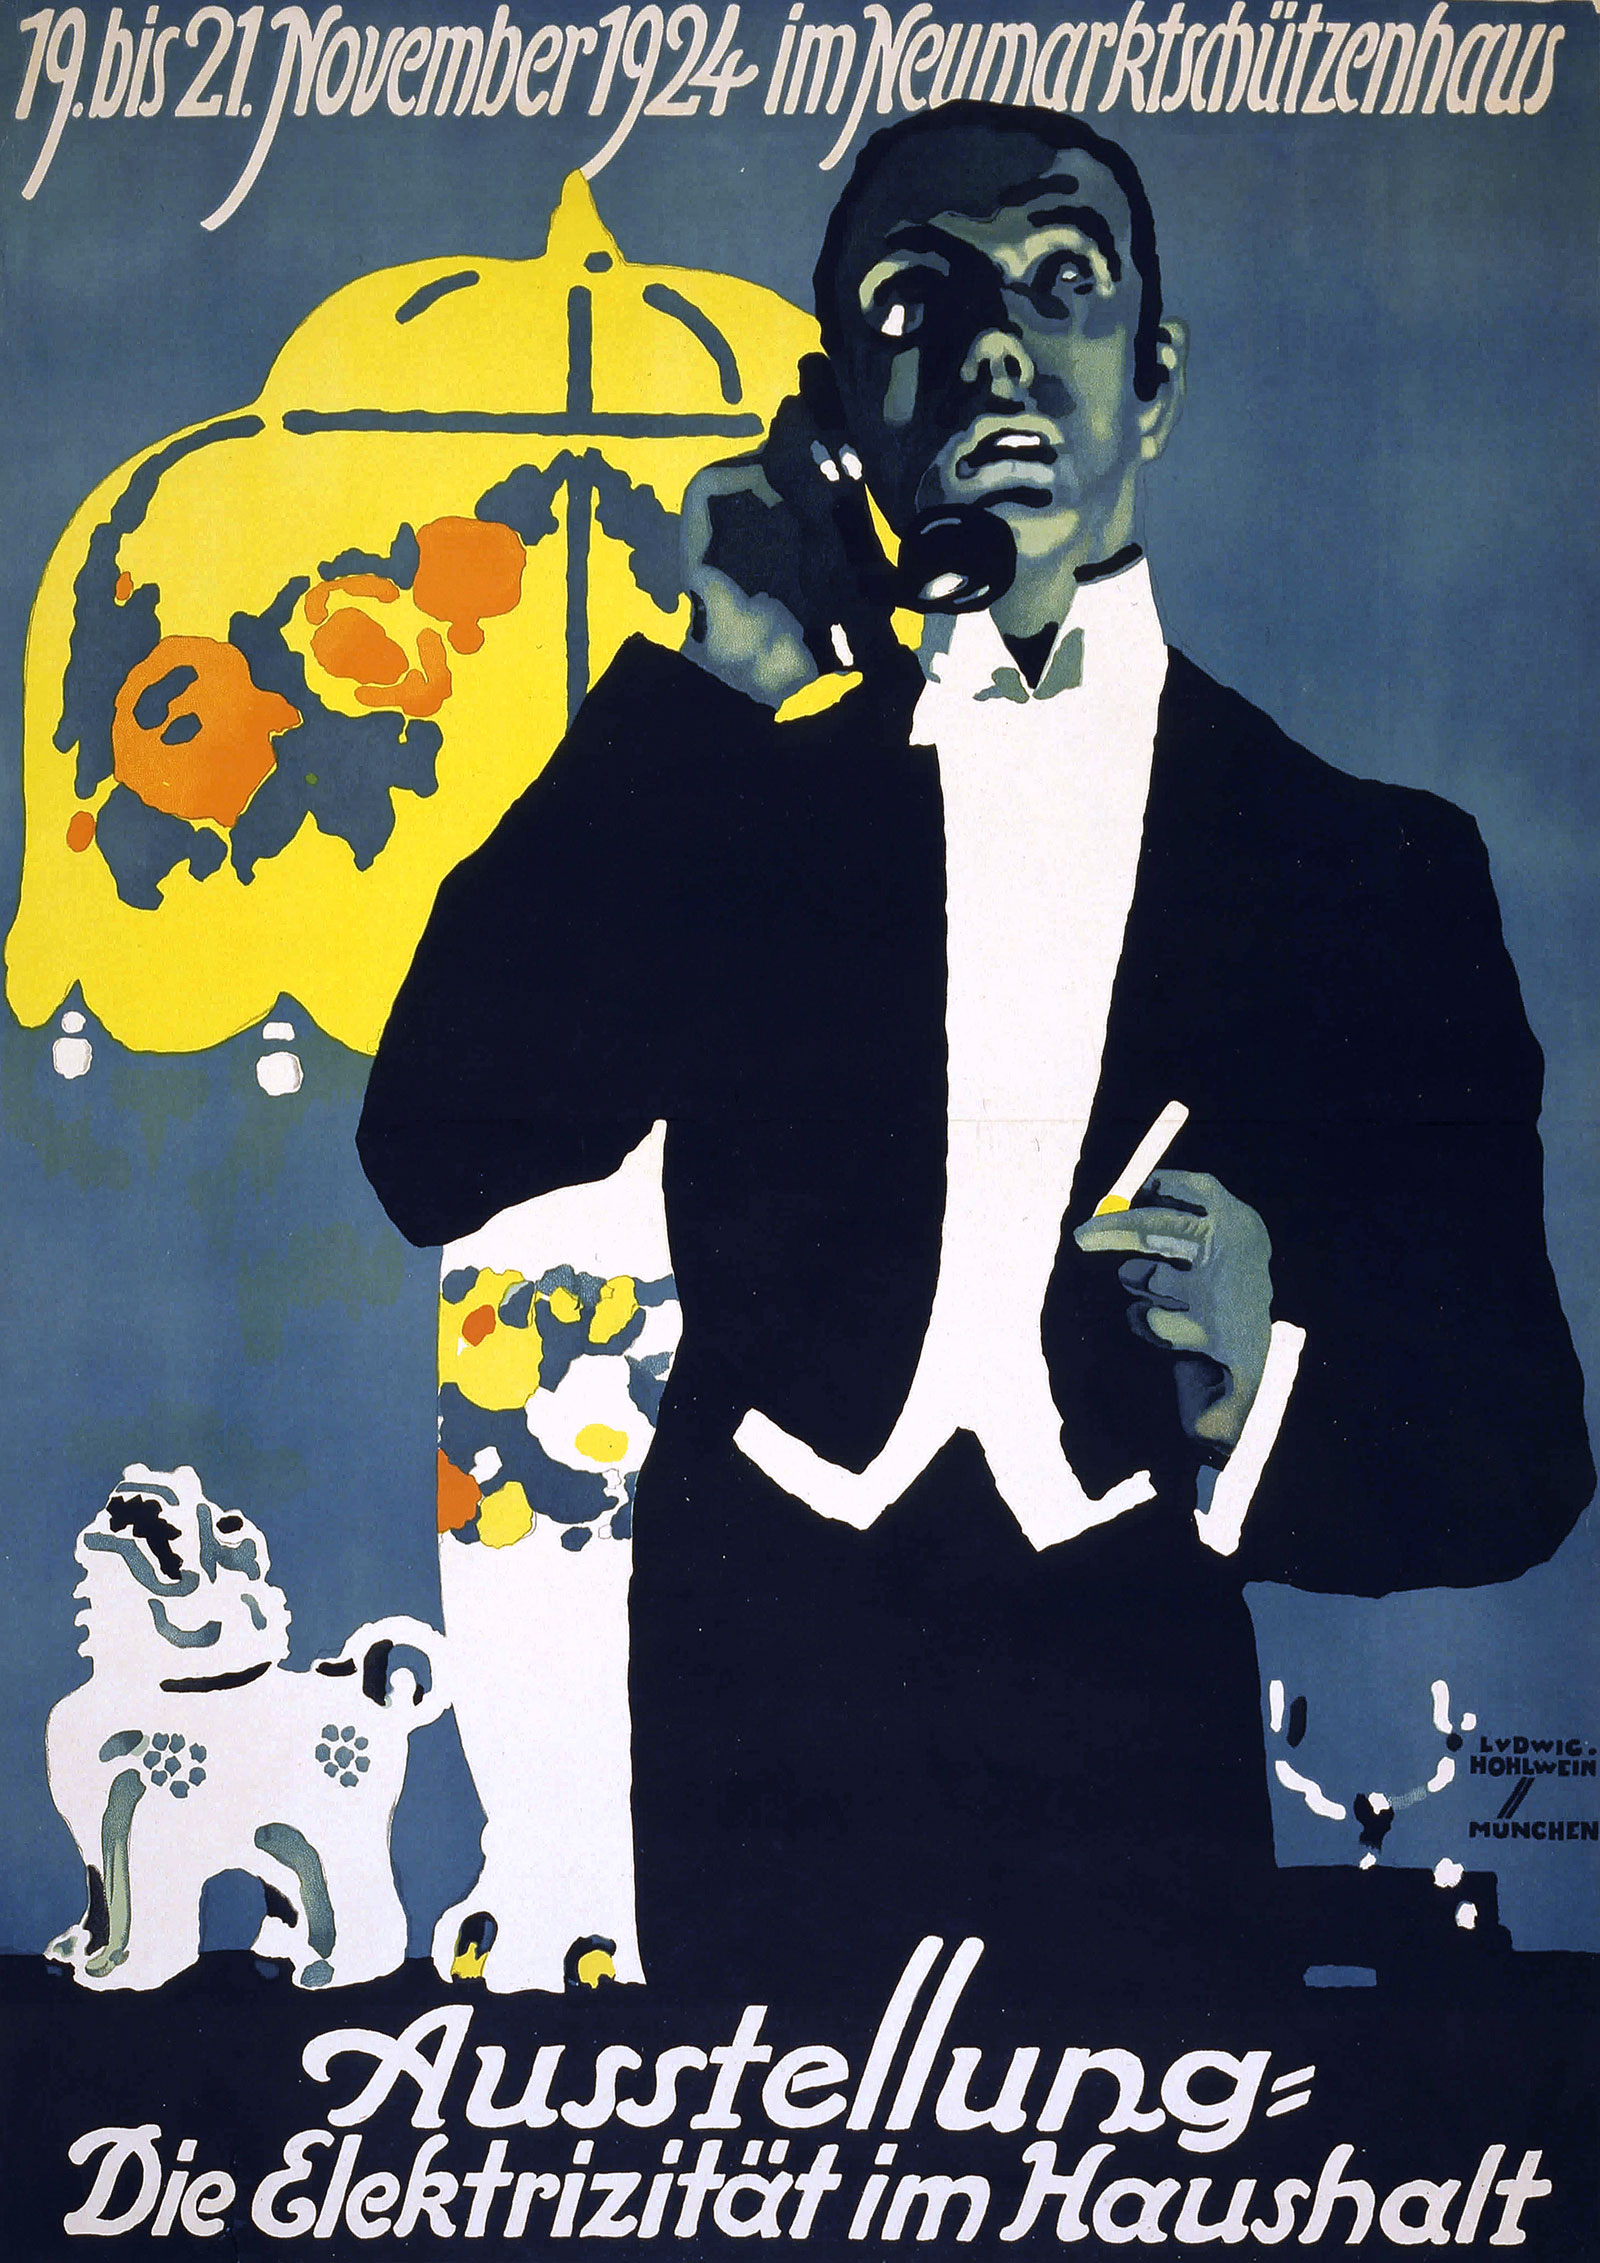 Poster showing a man using a telephone